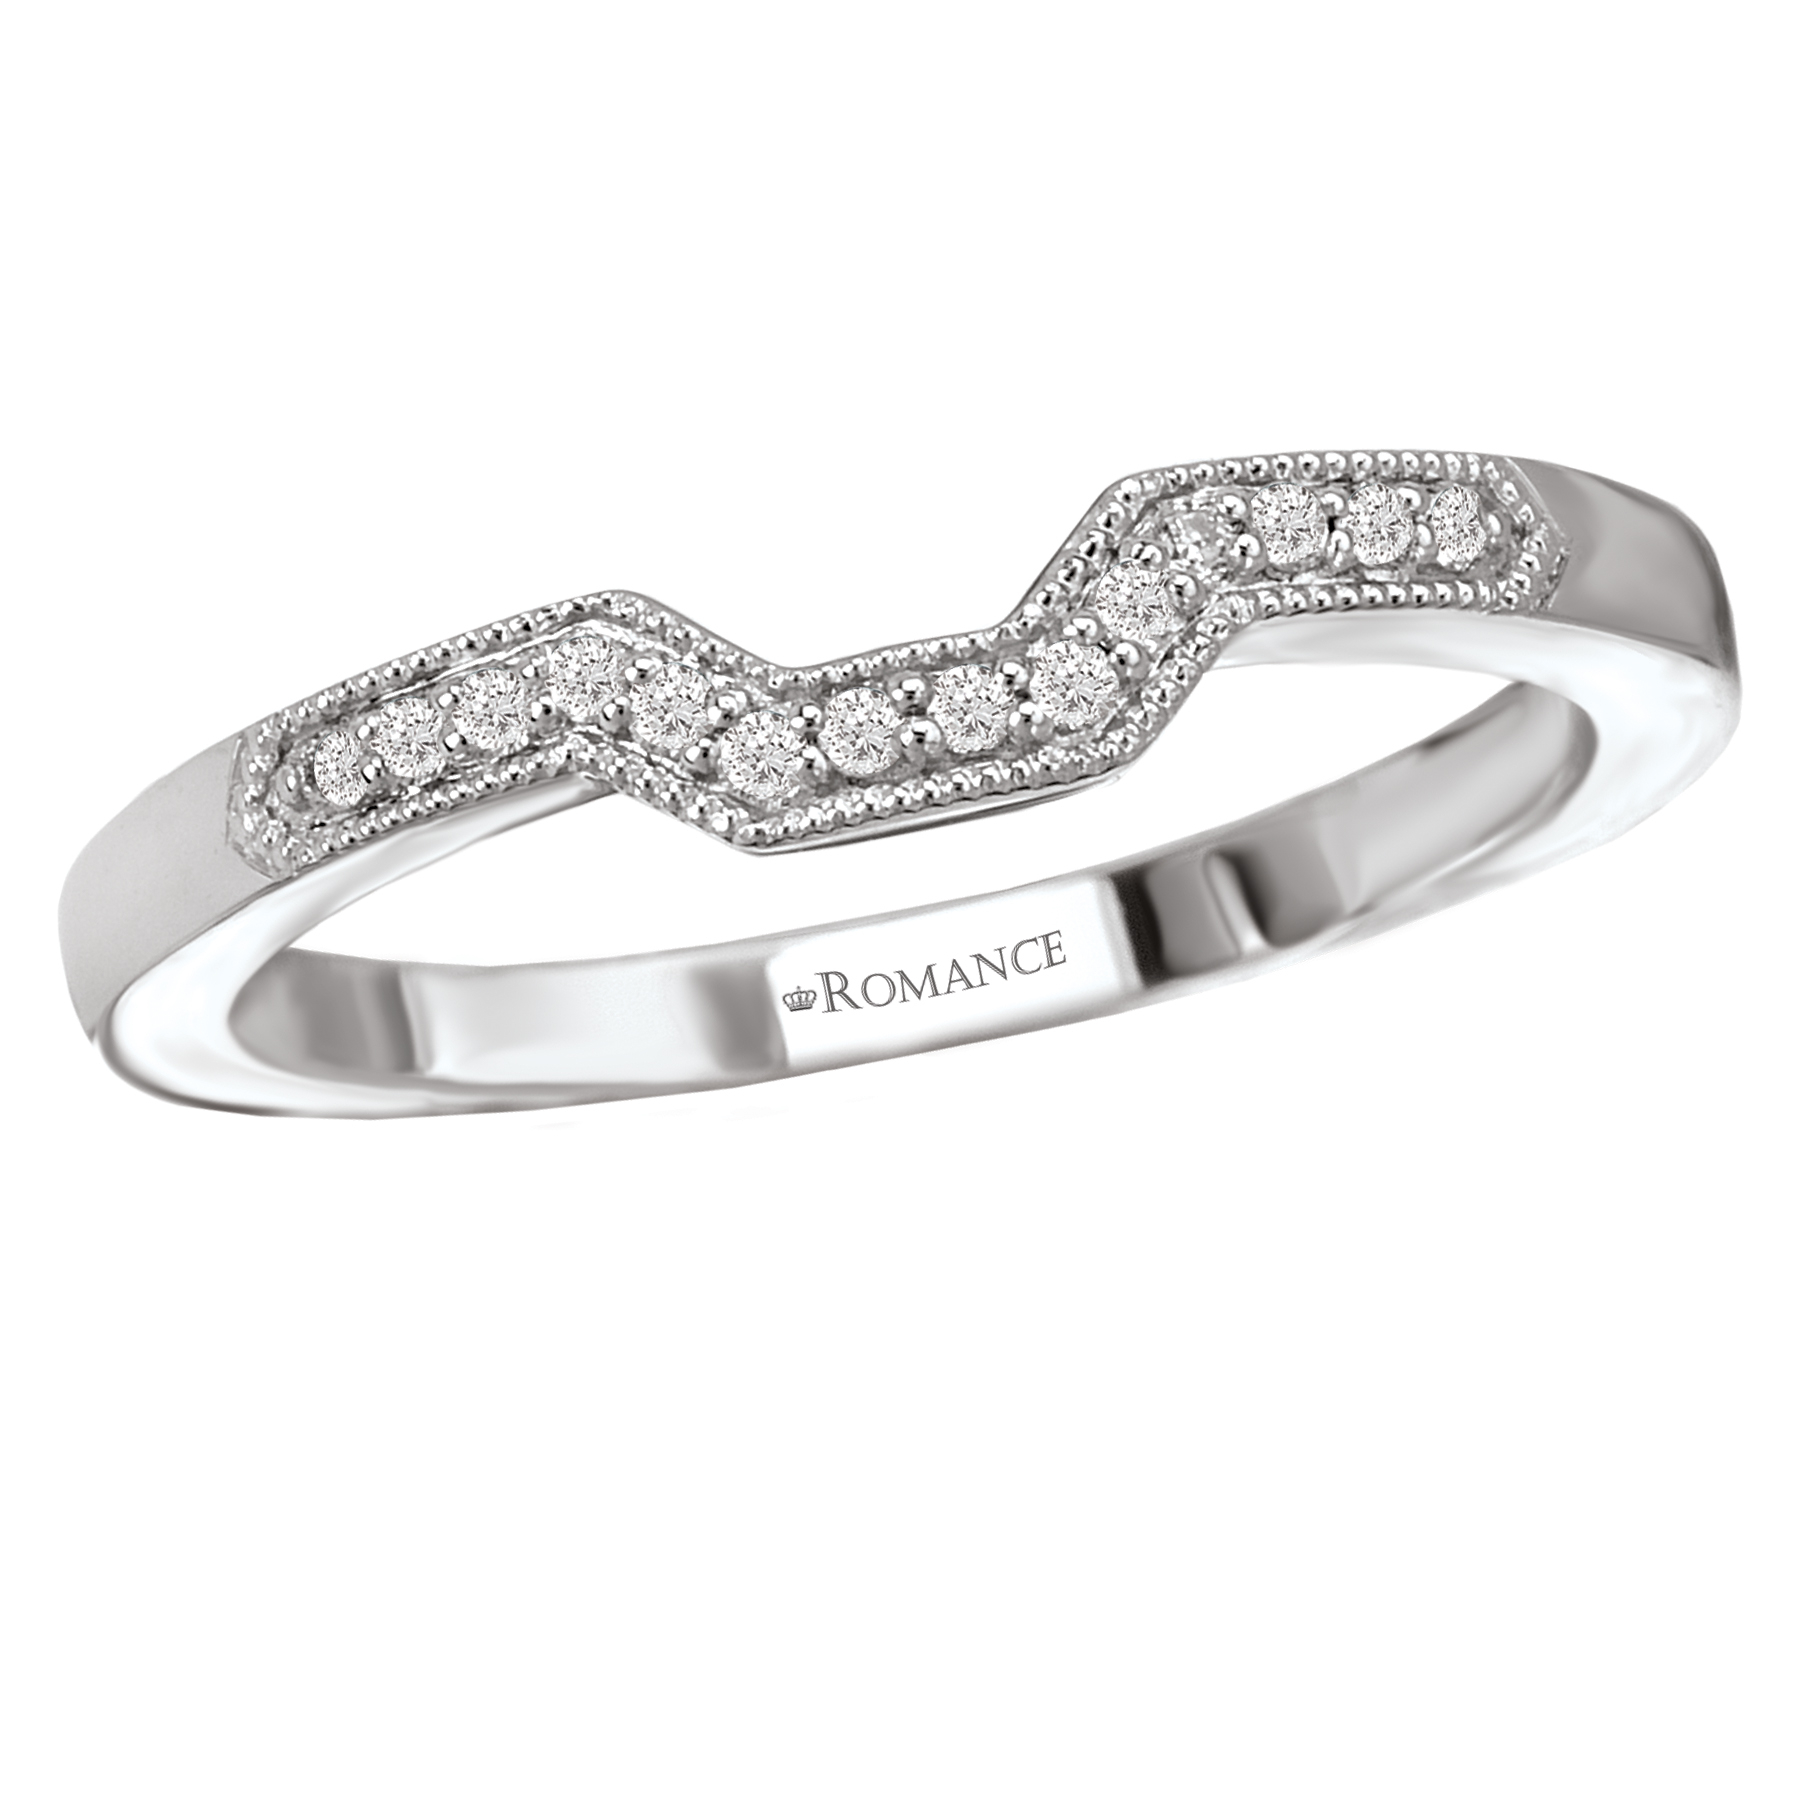 Romance Wedding Bands 117574-100W product image